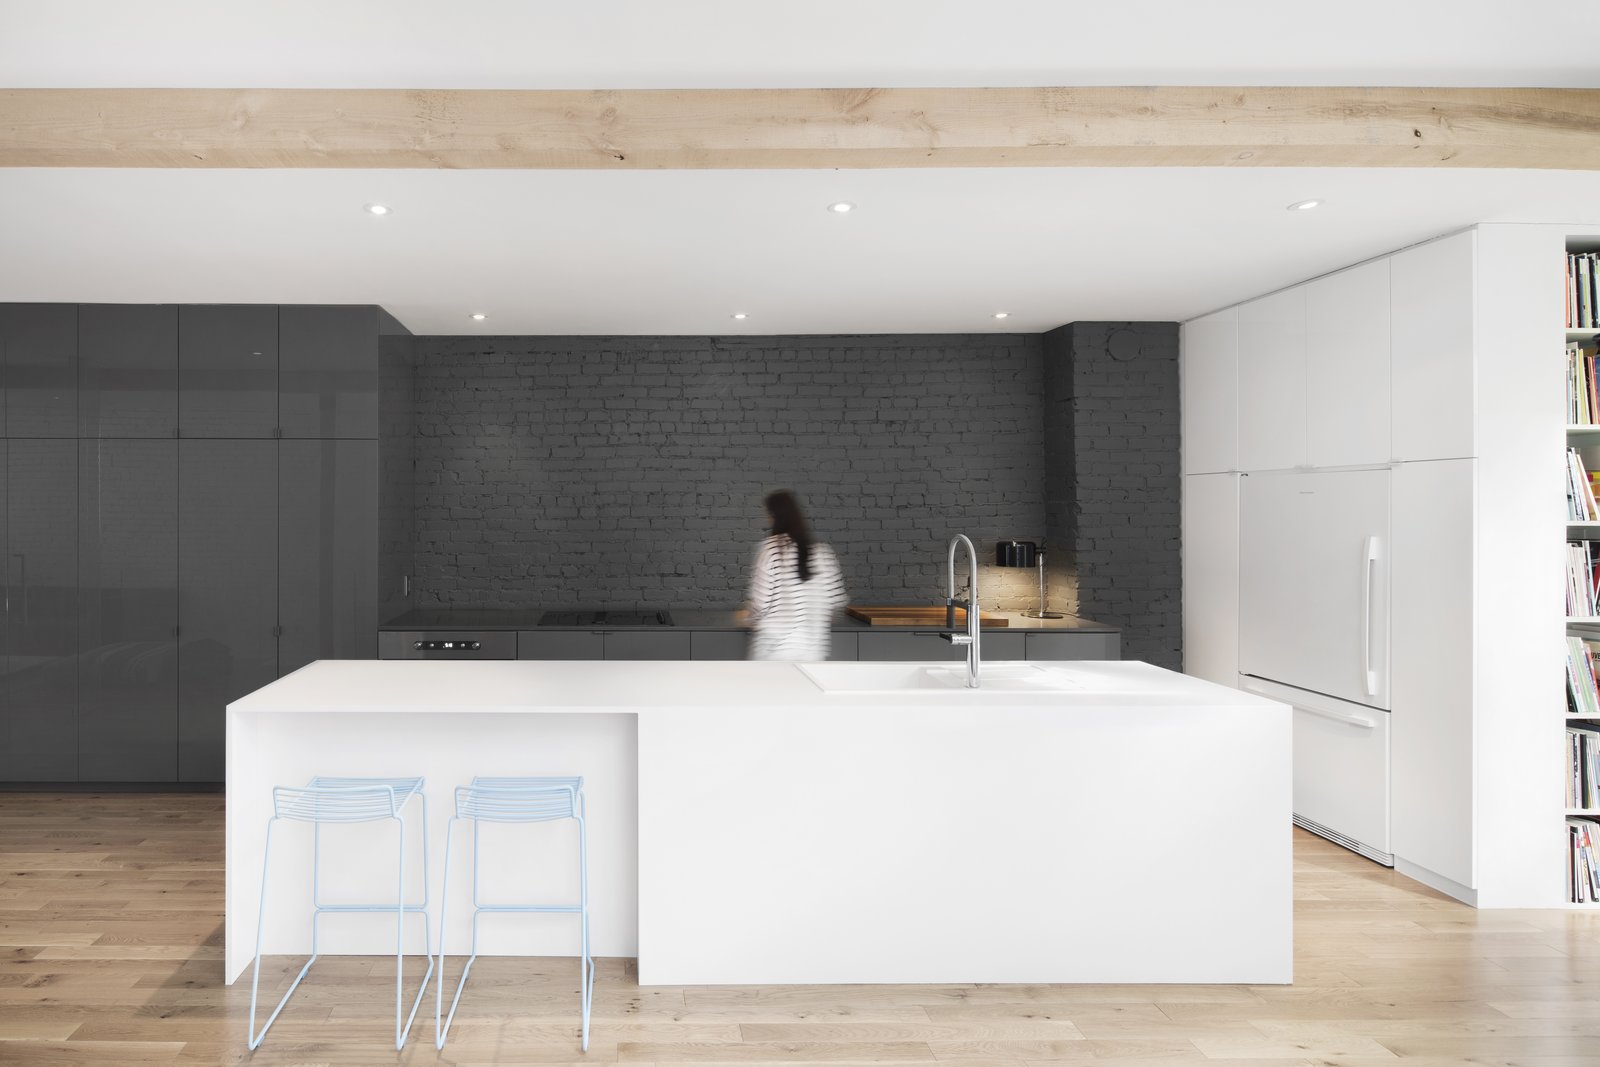 The exterior wall of the kitchen reveals the original brickwork.  Gray, full-height, seamless cabinets match the hue of the gray painted brick. Two light blue counter stools add a pop of color.